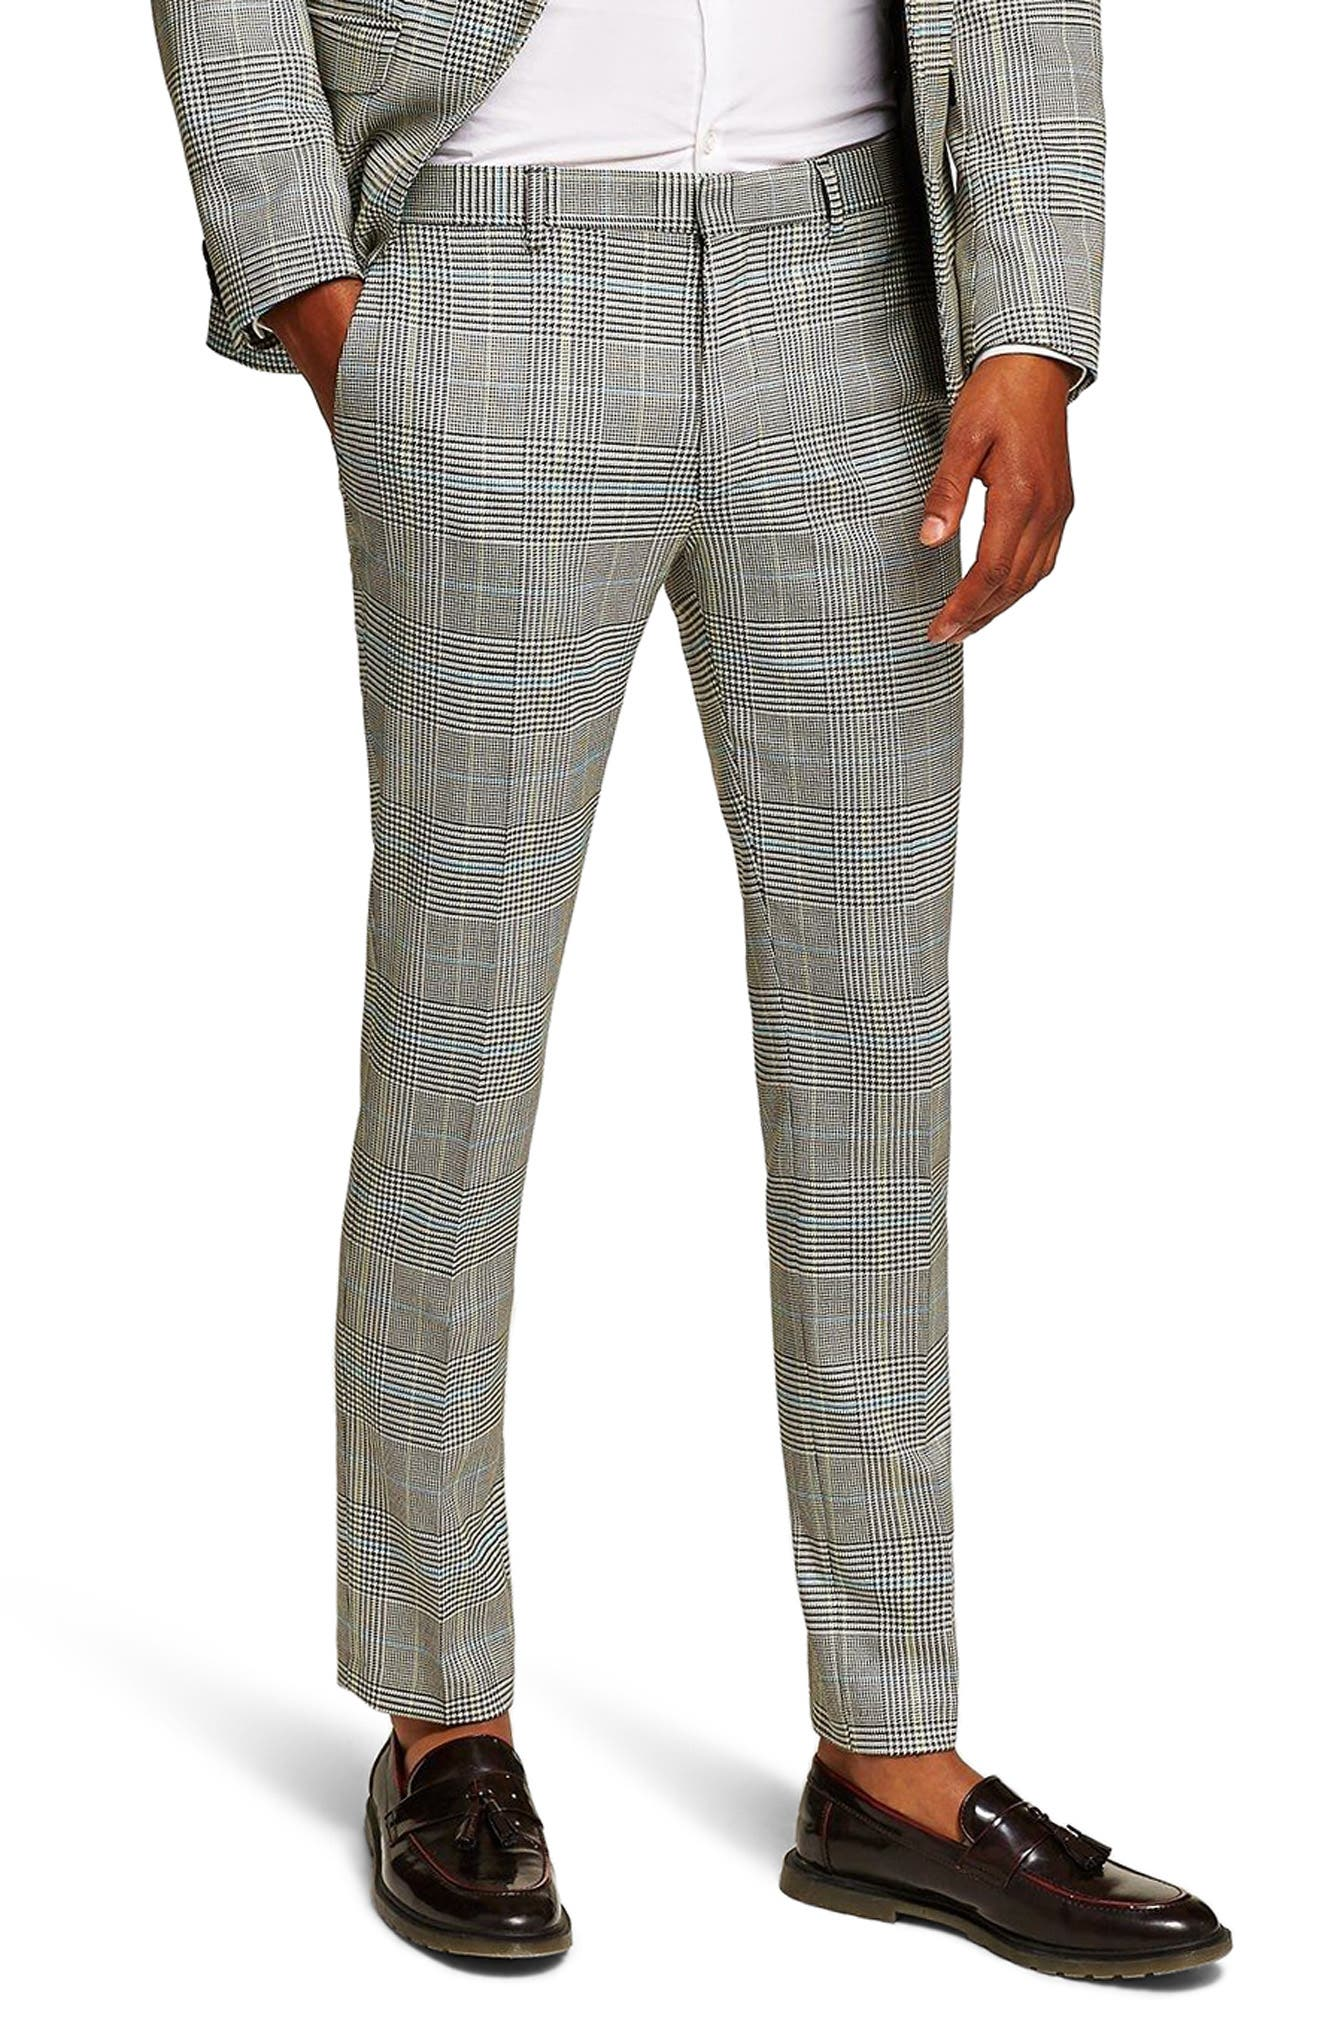 Skinny Fit Houndstooth Suit Trousers,                             Main thumbnail 1, color,                             020